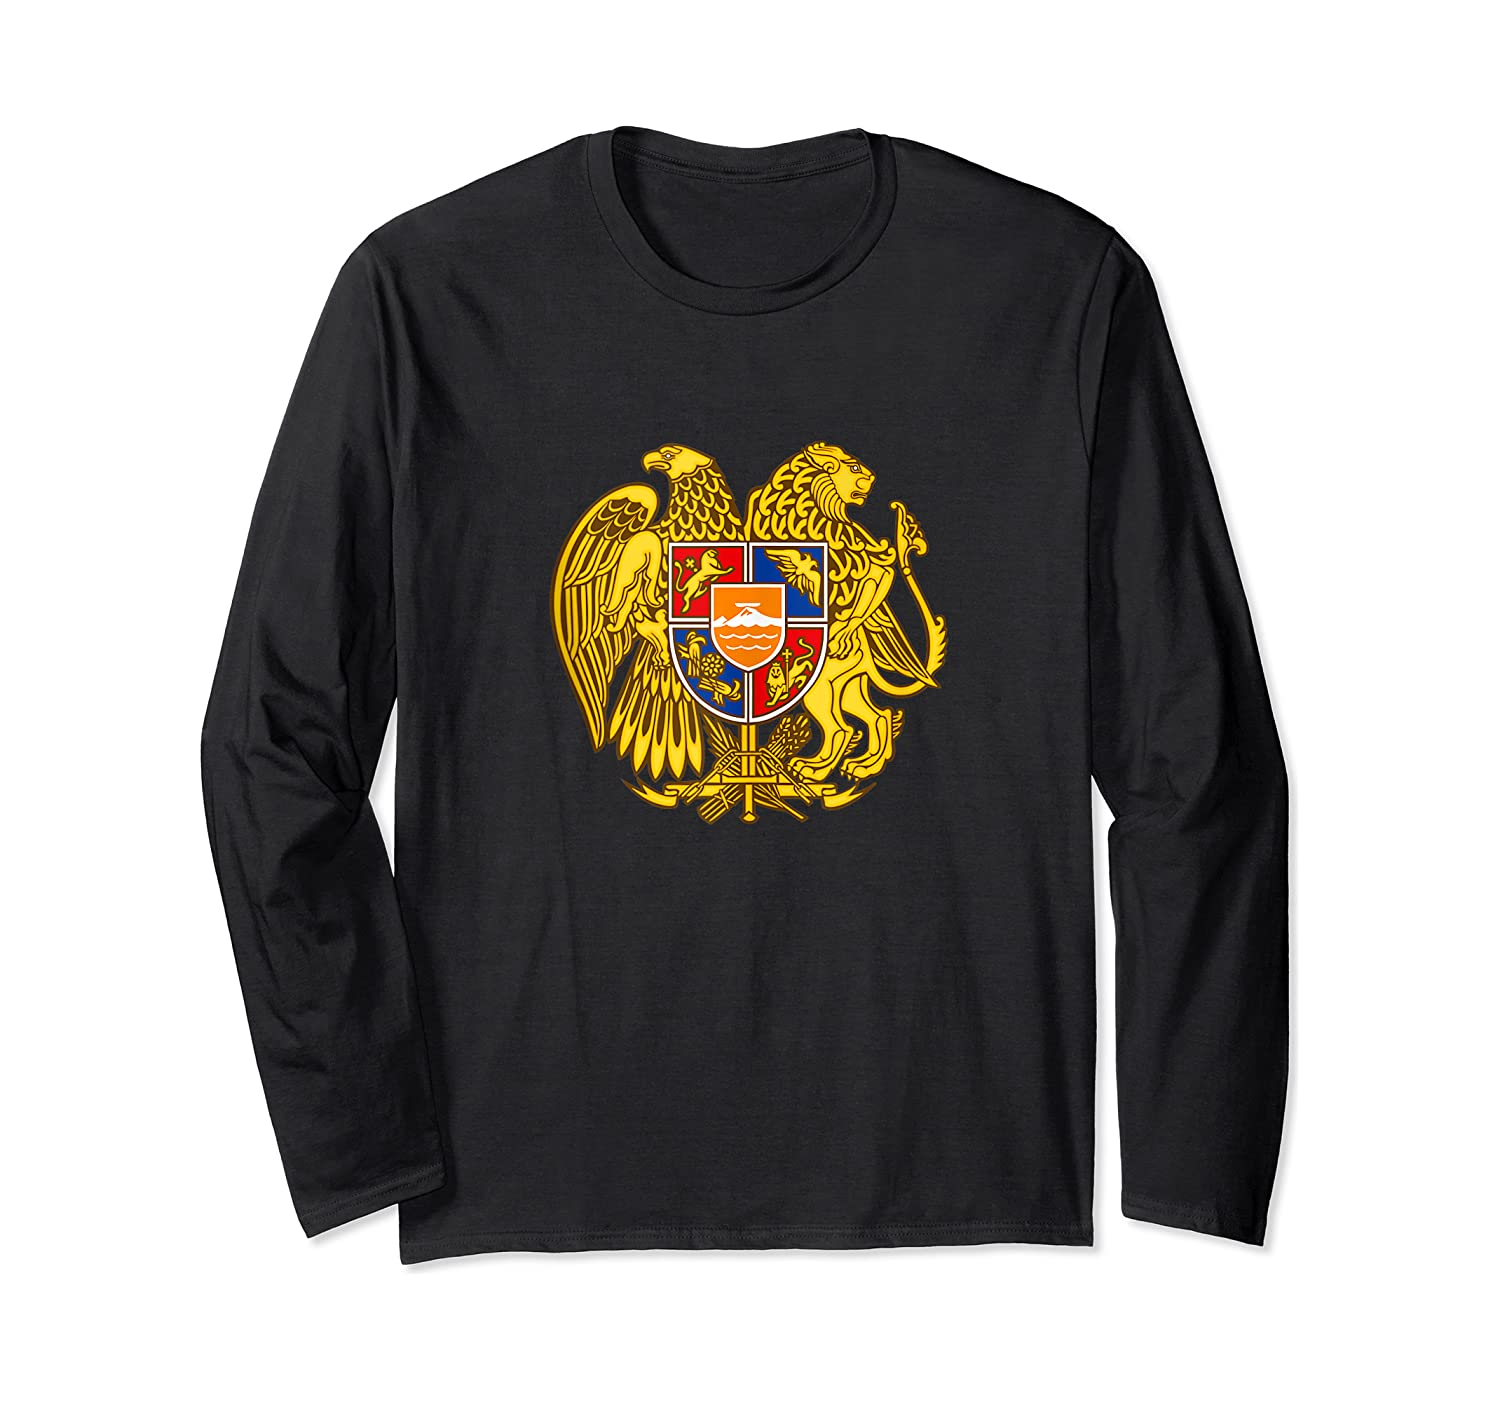 Aria Coat Of Arms Emblem On Shirts For & Tank Top Long Sleeve T-shirt